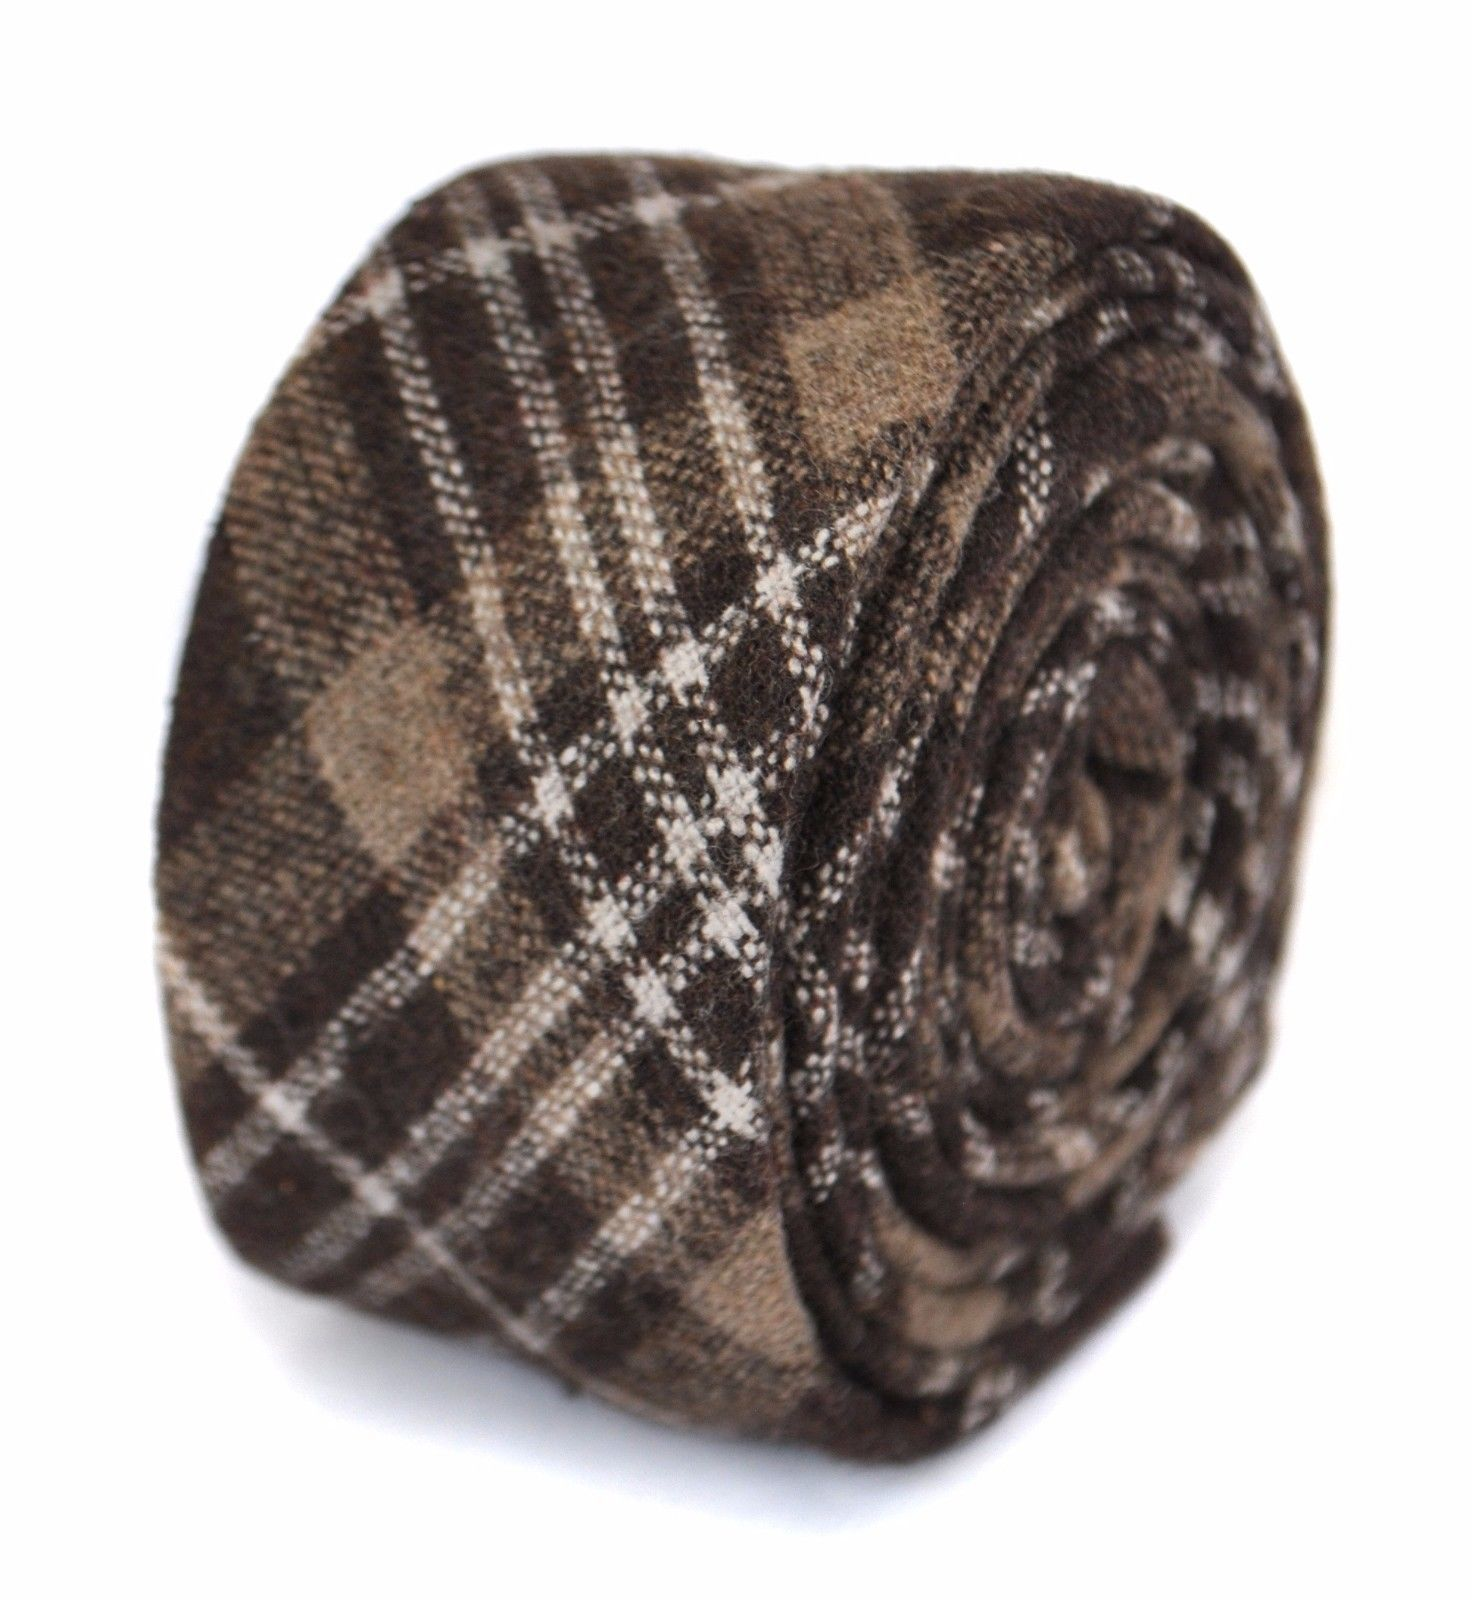 Frederick Thomas mens wool tweed tie in brown black and white check FT1951